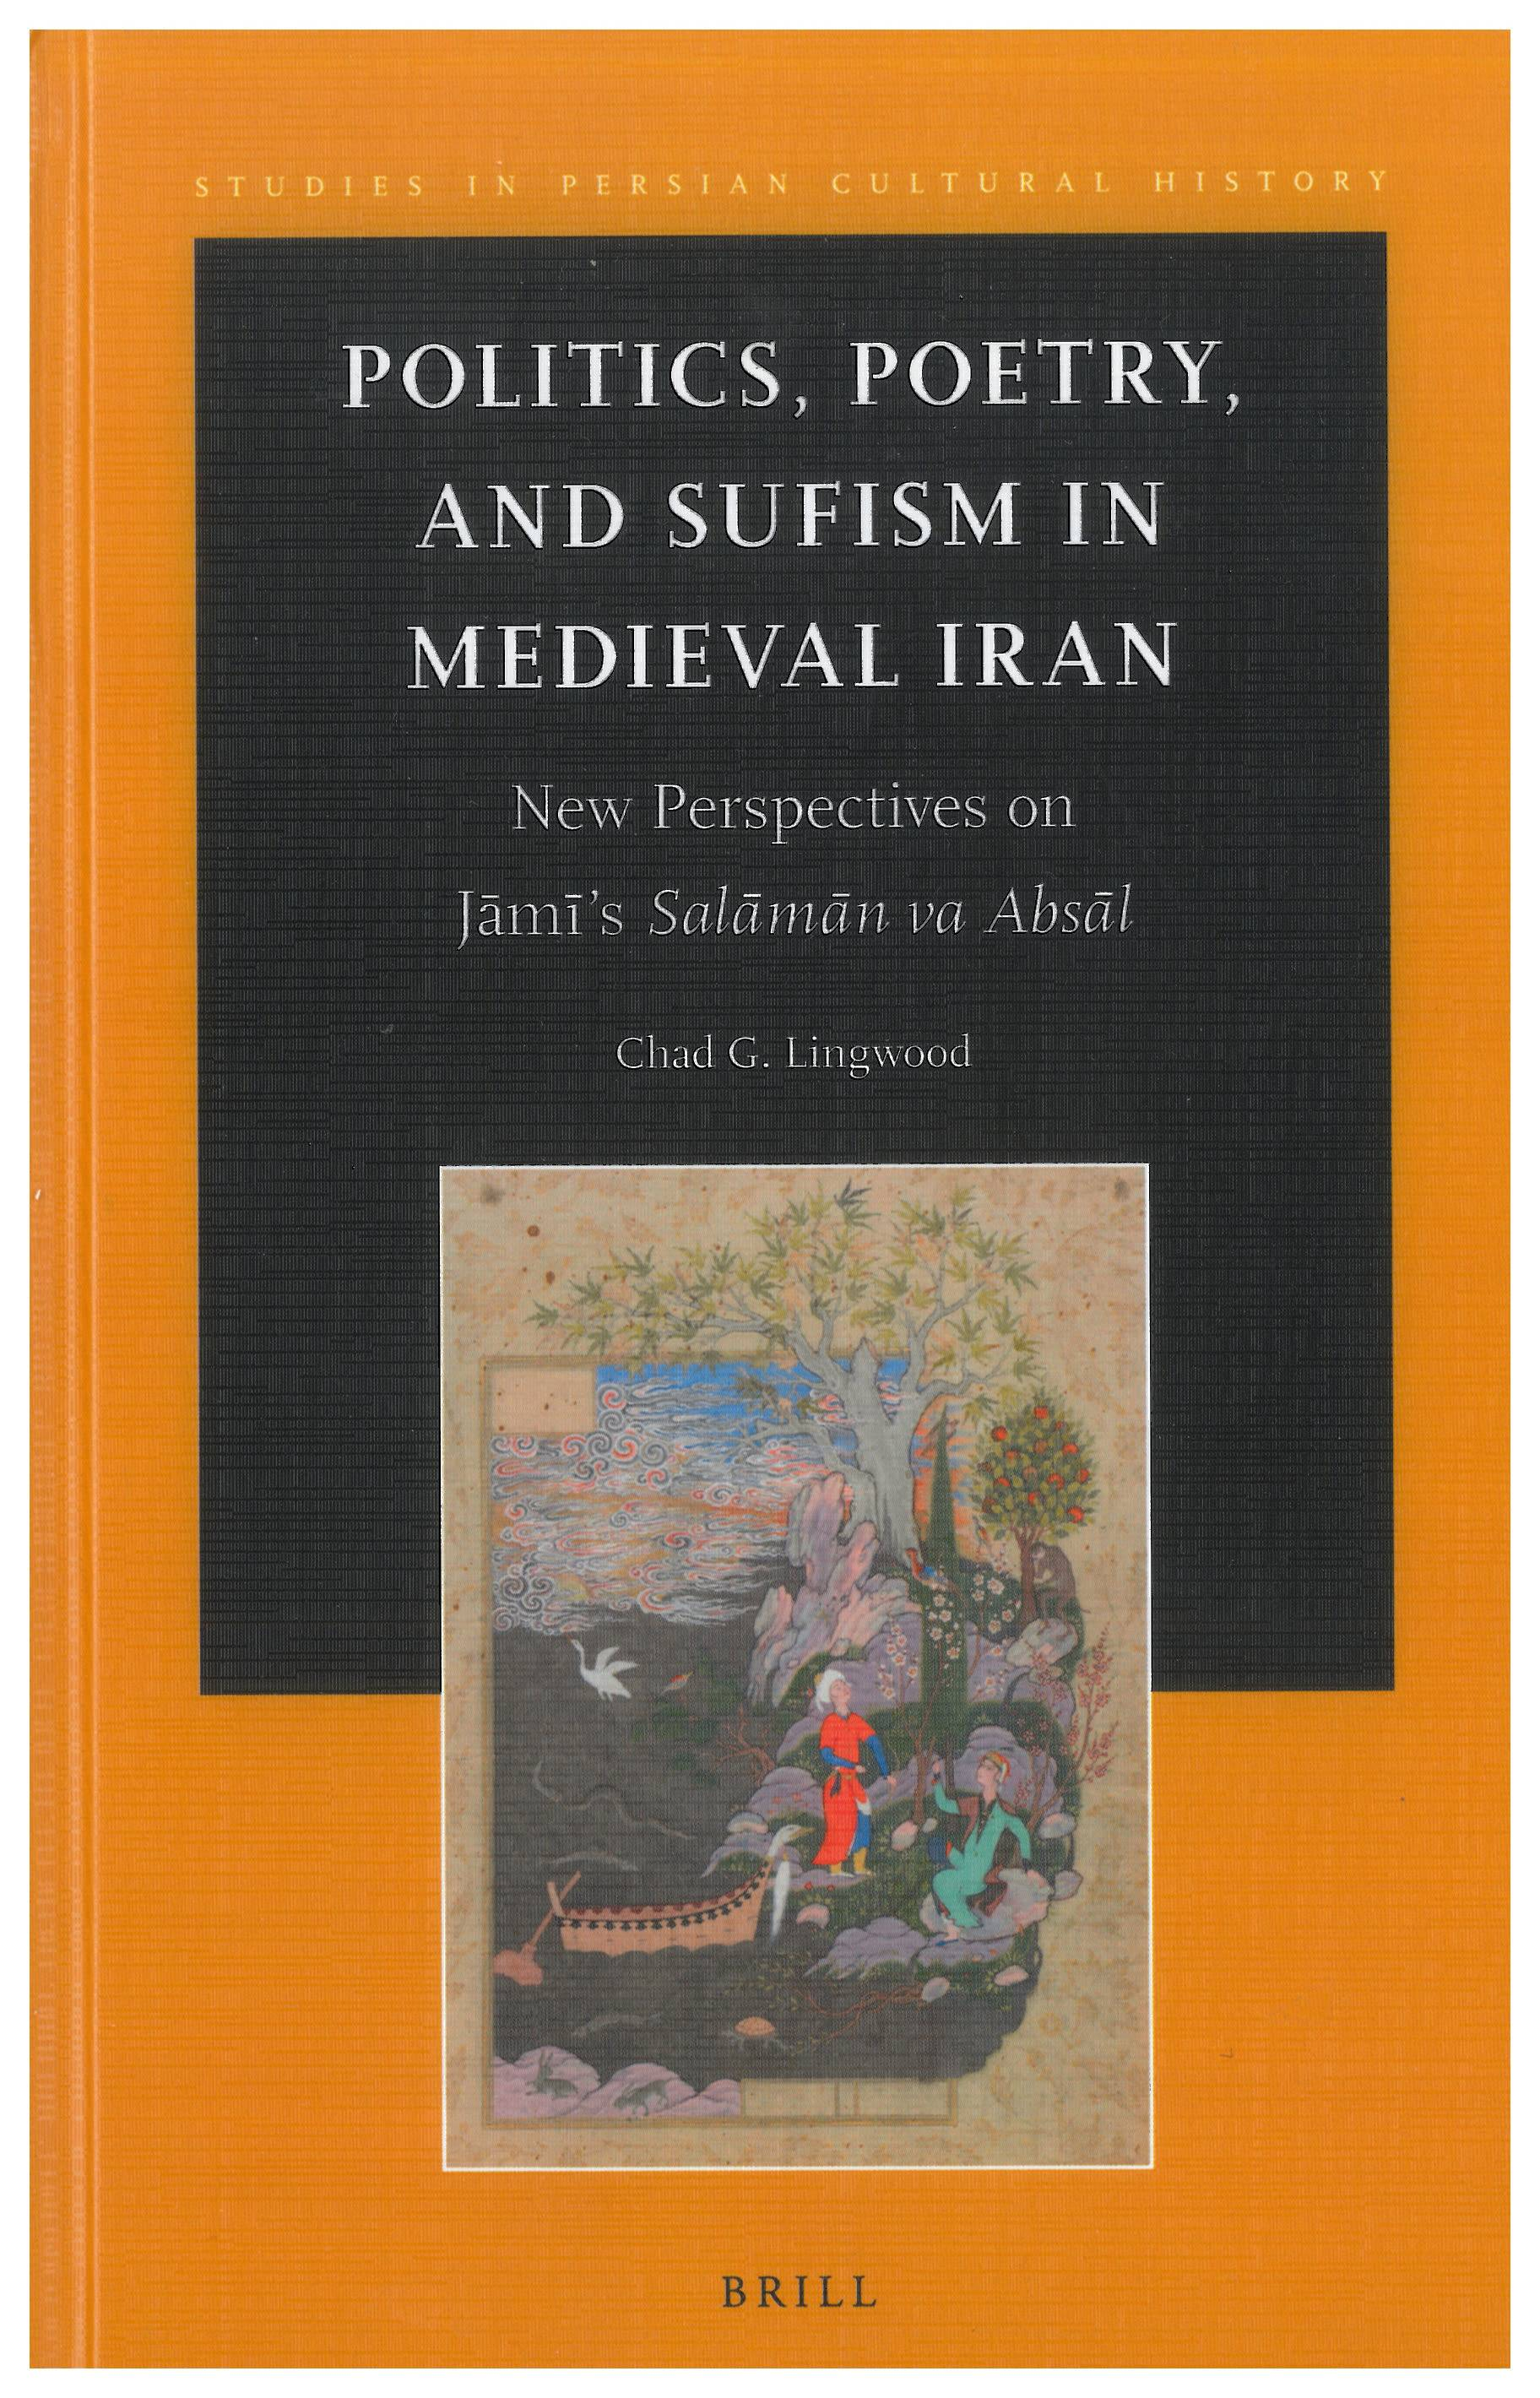 Politics, Poetry, and Sufism in Medeival Iran